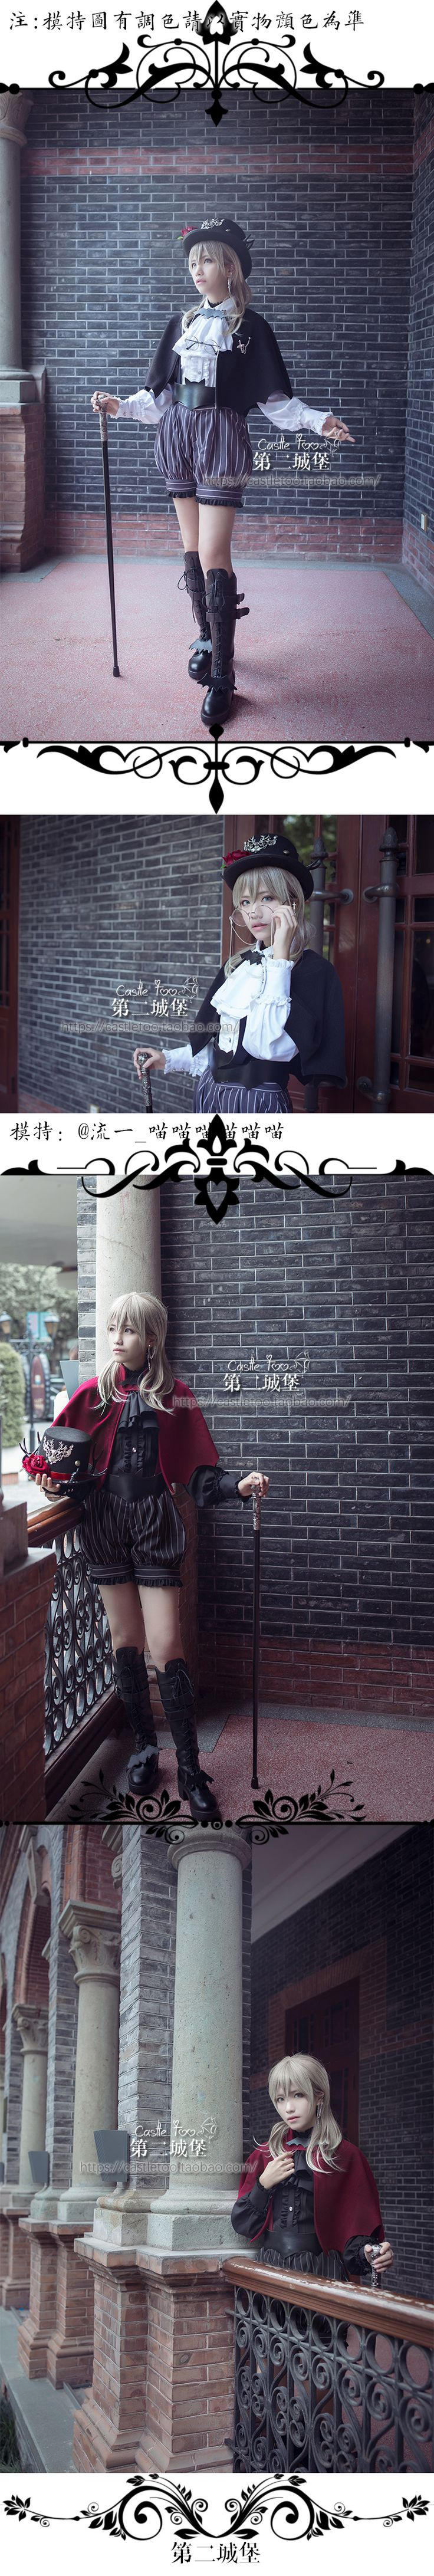 Taobao ouji【第二城堡CastleToo】This is everything